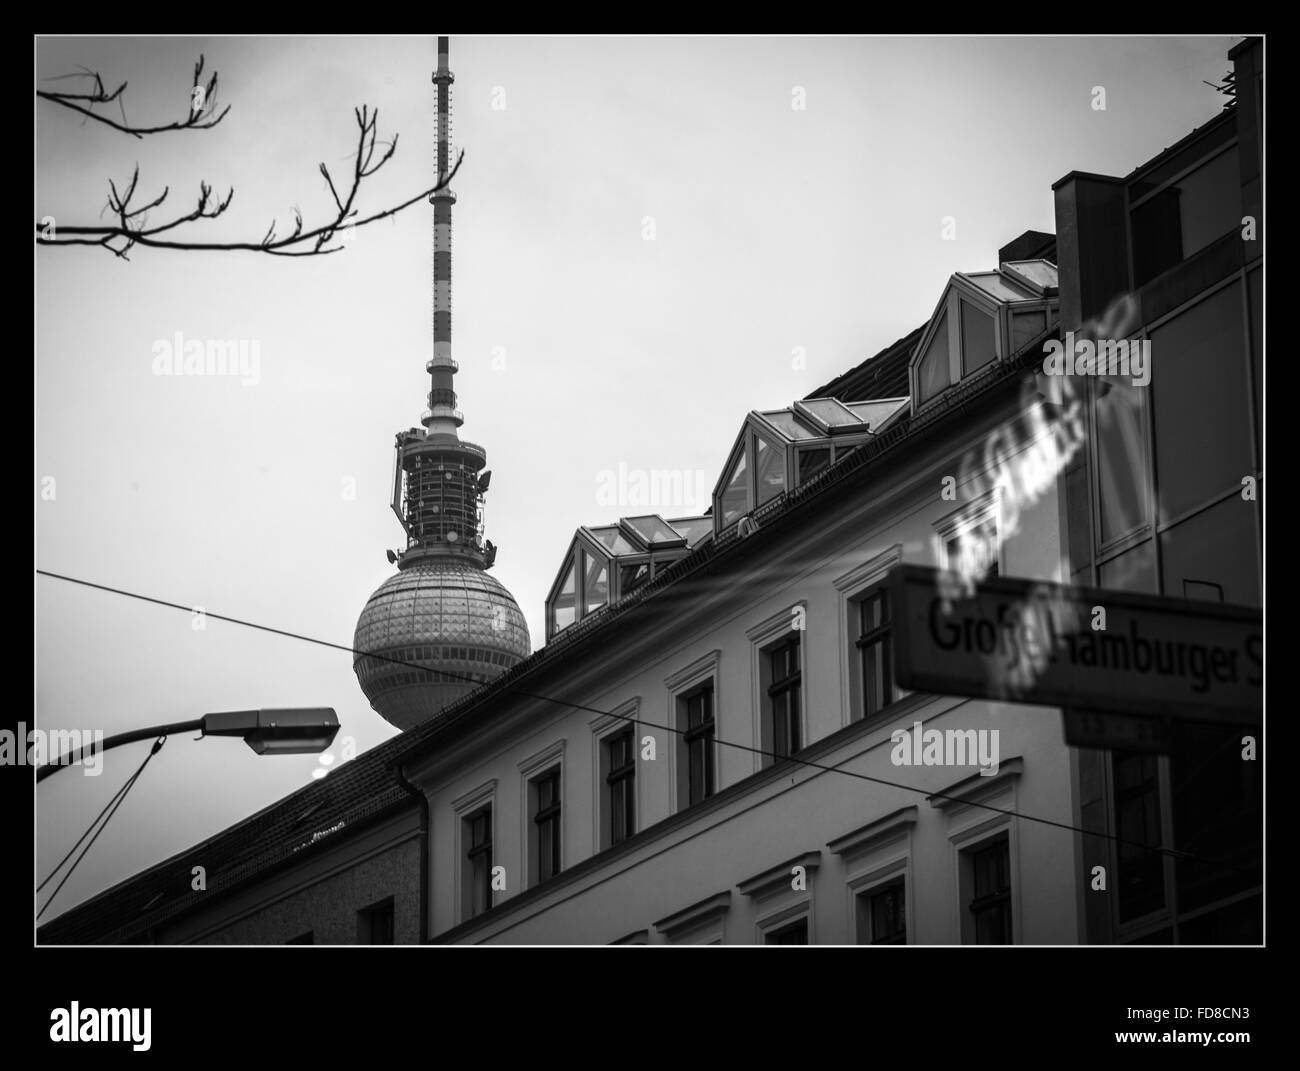 Low Angle View Of Fernsehturm And Building Against Clear Sky At Night - Stock Image